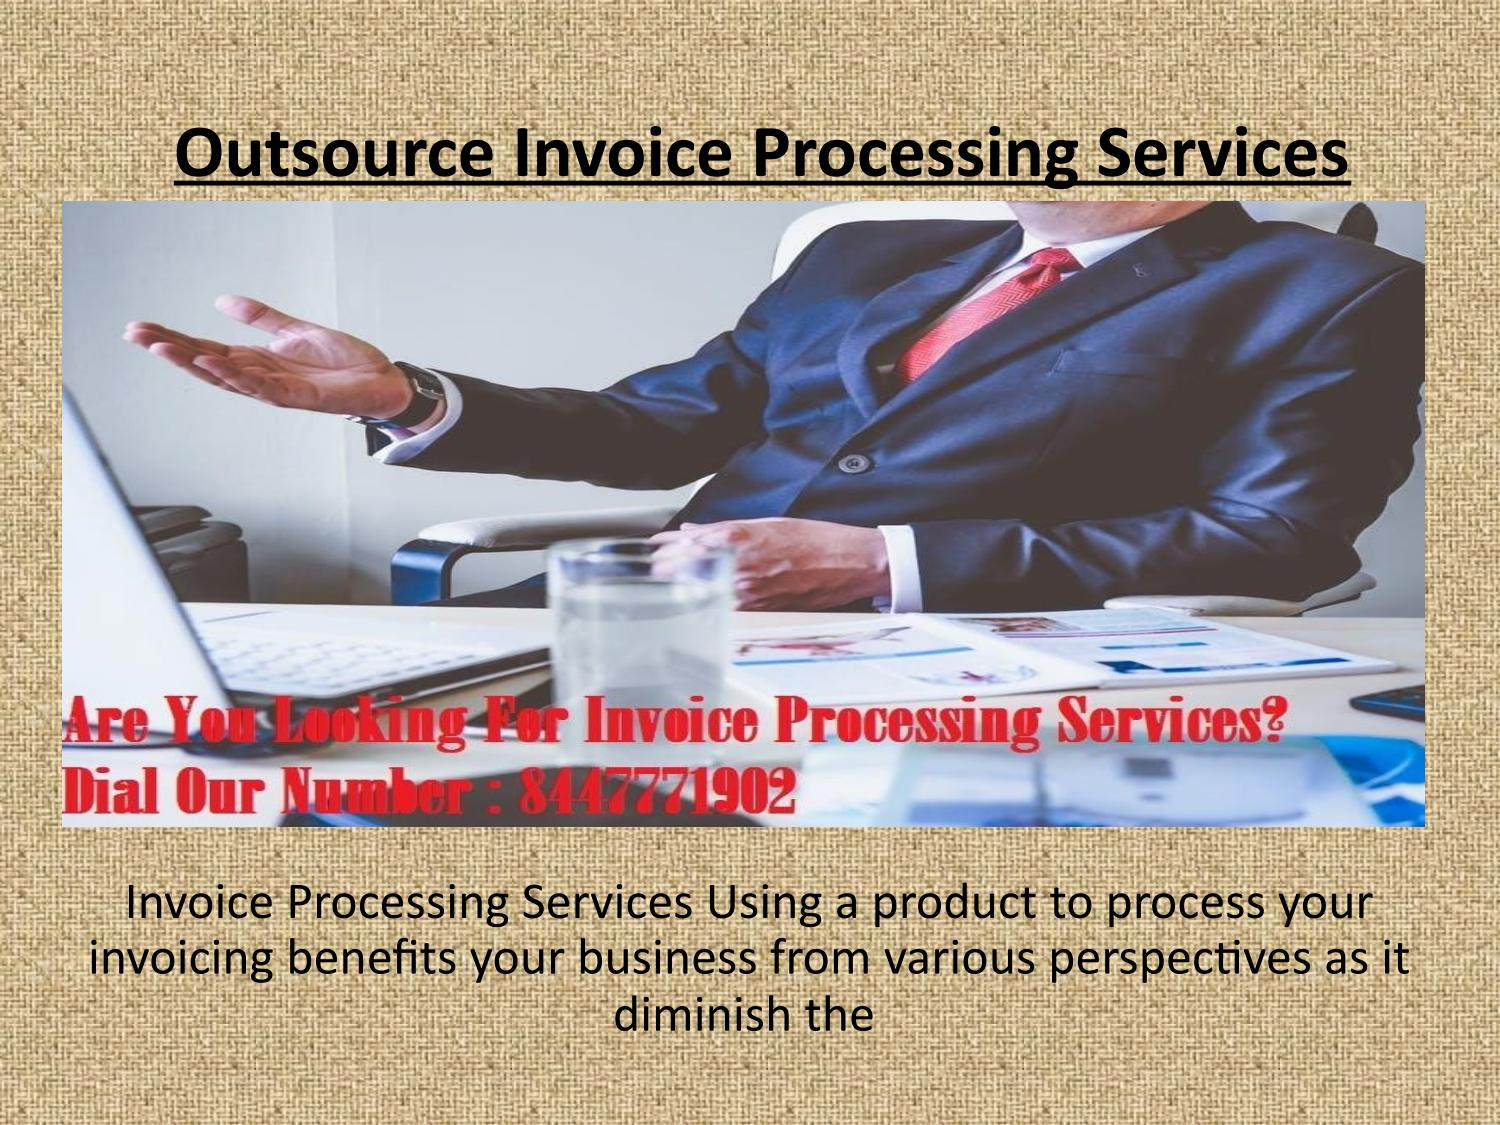 Outsource Invoice Processing Services Usa By Quickbookserror Issuu - Outsource invoice processing